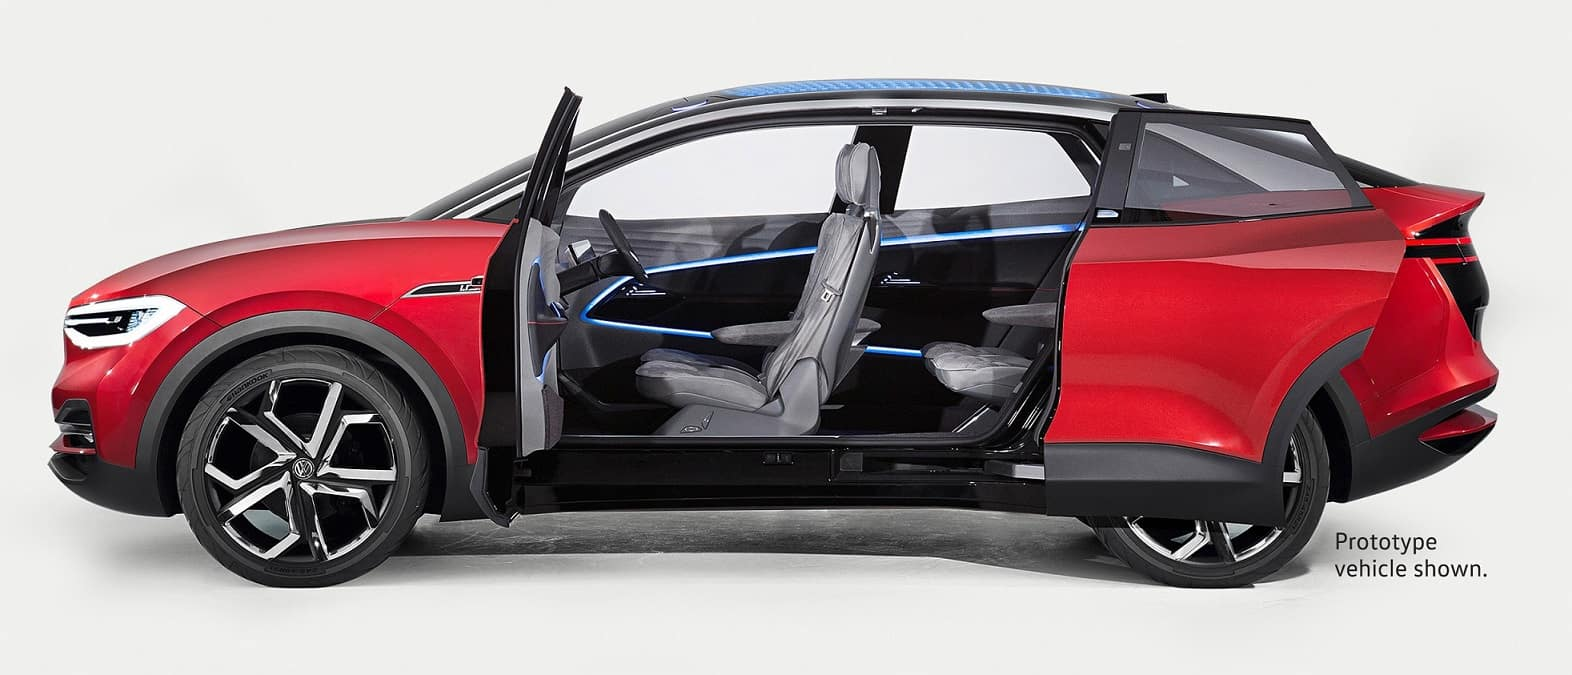 Volkswagen I.D. CROZZ Prototype Vehicle Side Profile and Interior Seating